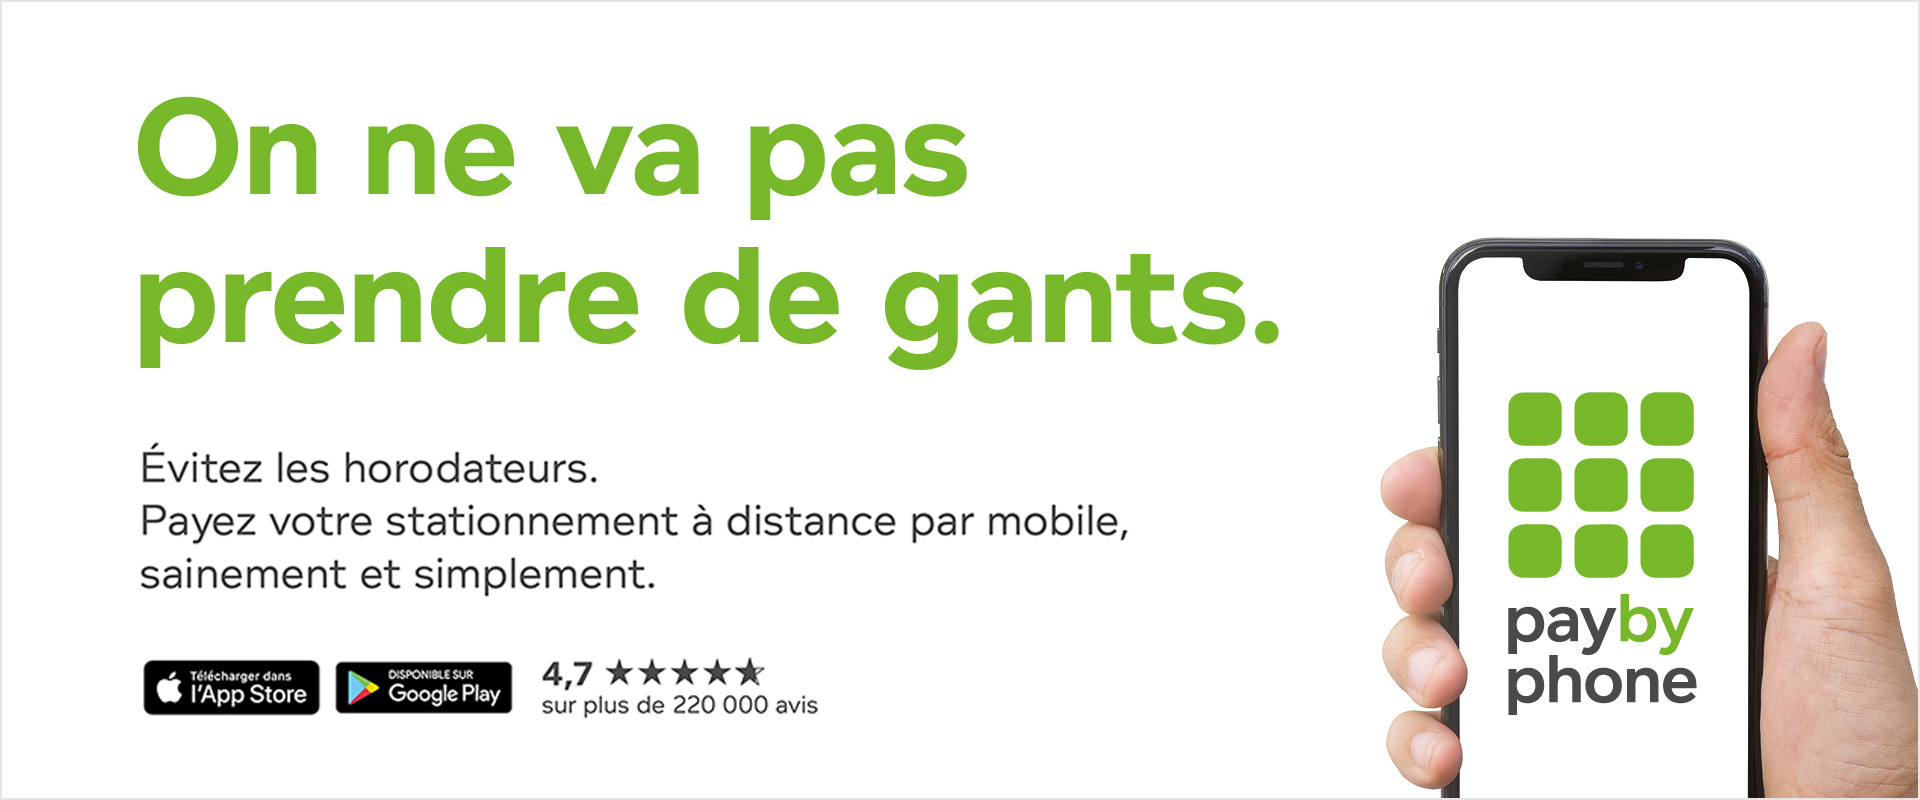 campagne-publicite-application-mobile-paybyphone-application-mobile-agence-communication-buzznative-paris